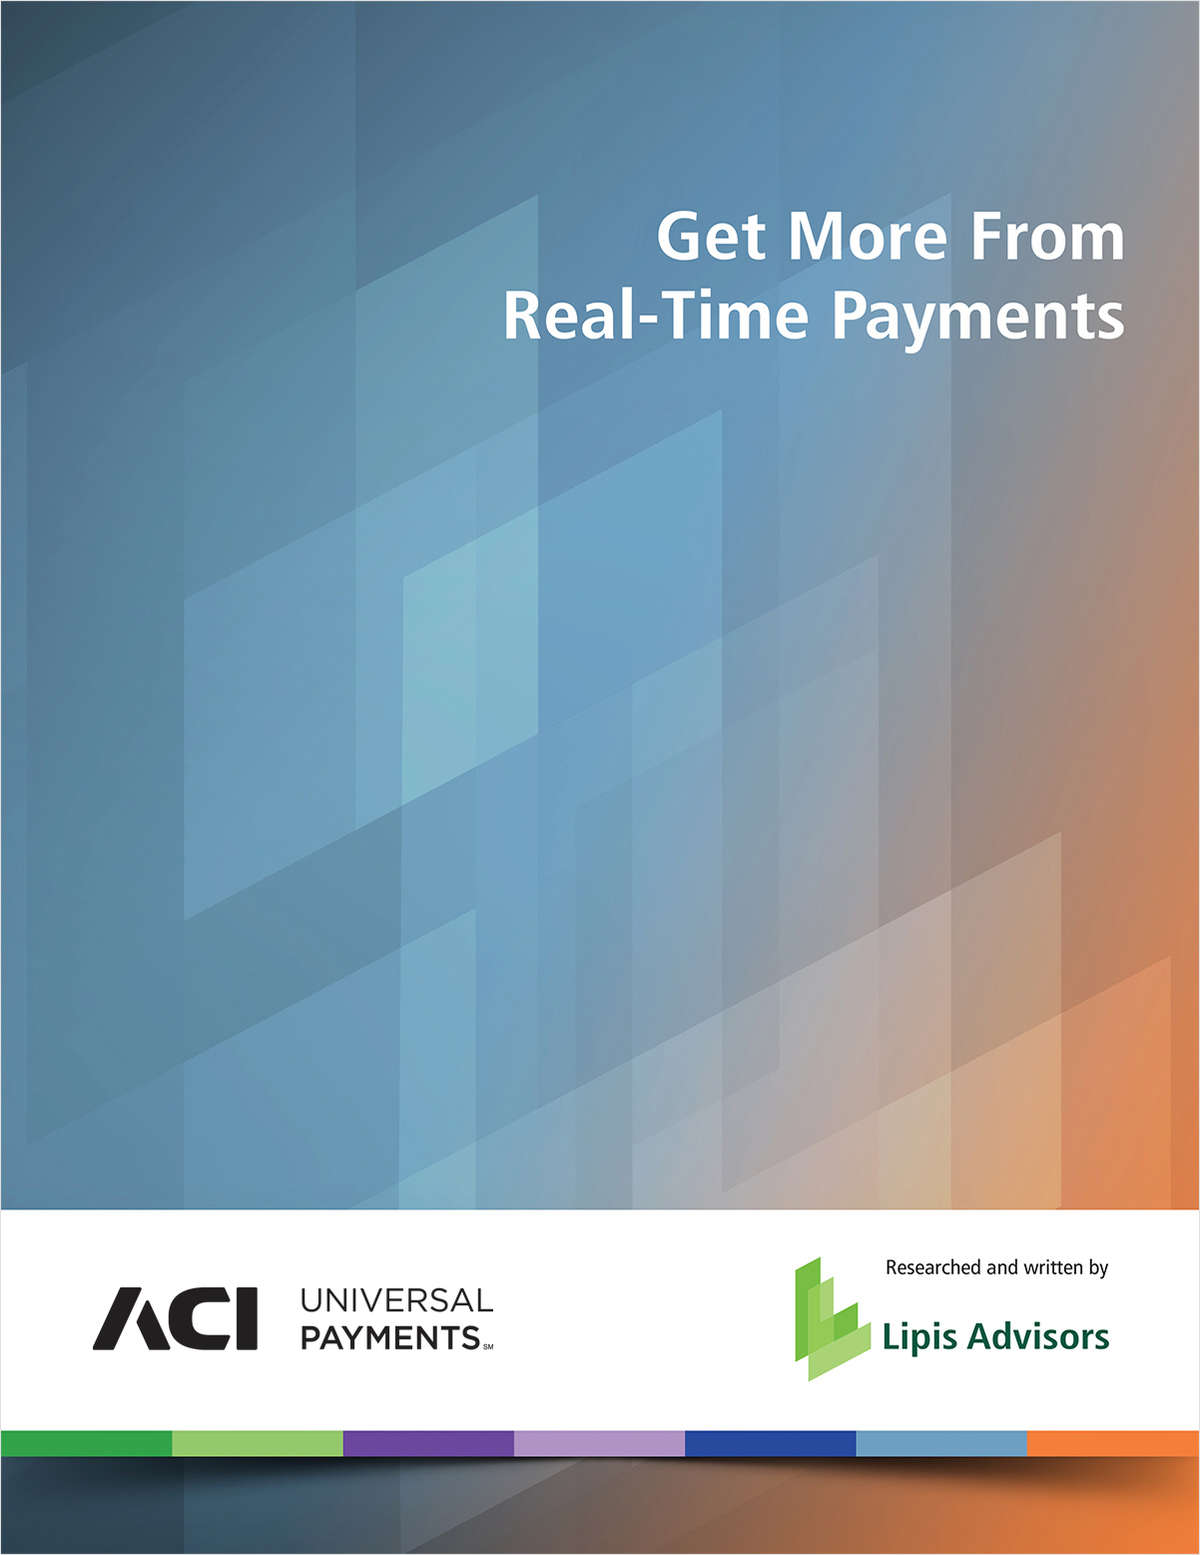 Get More From Real-Time Payments